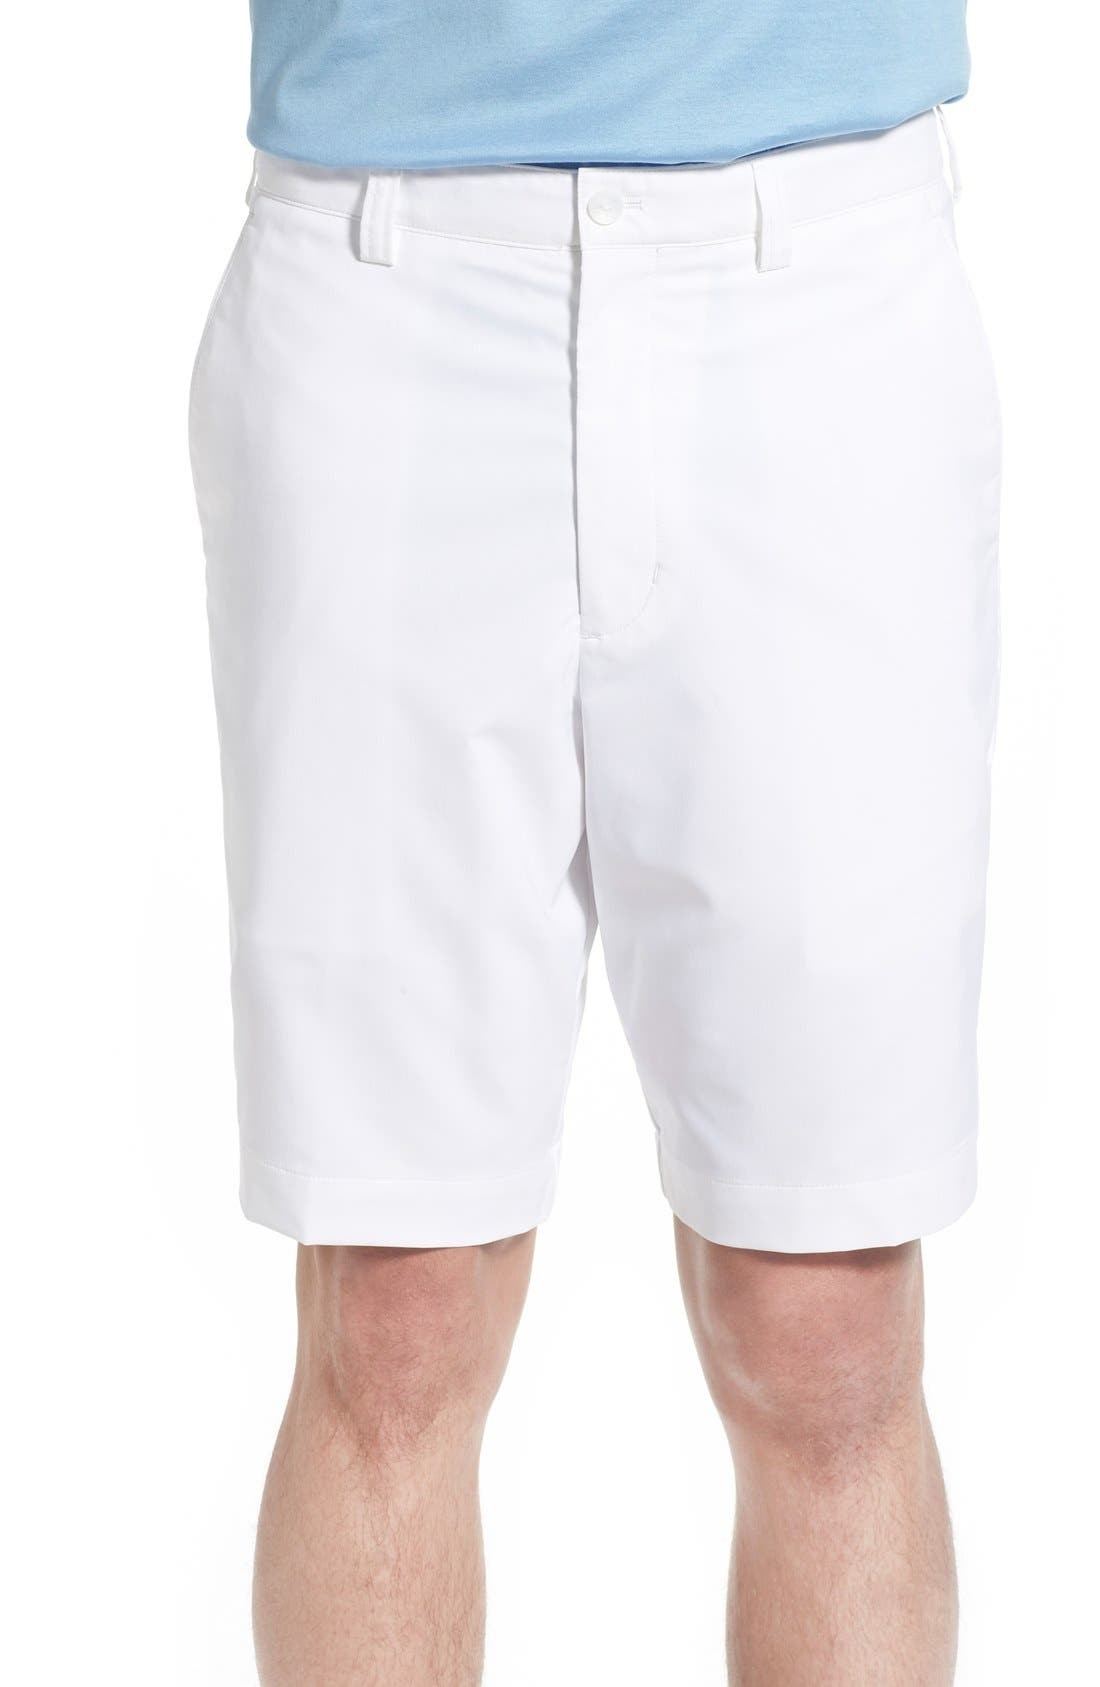 Alternate Image 1 Selected - Cutter & Buck DryTec Shorts